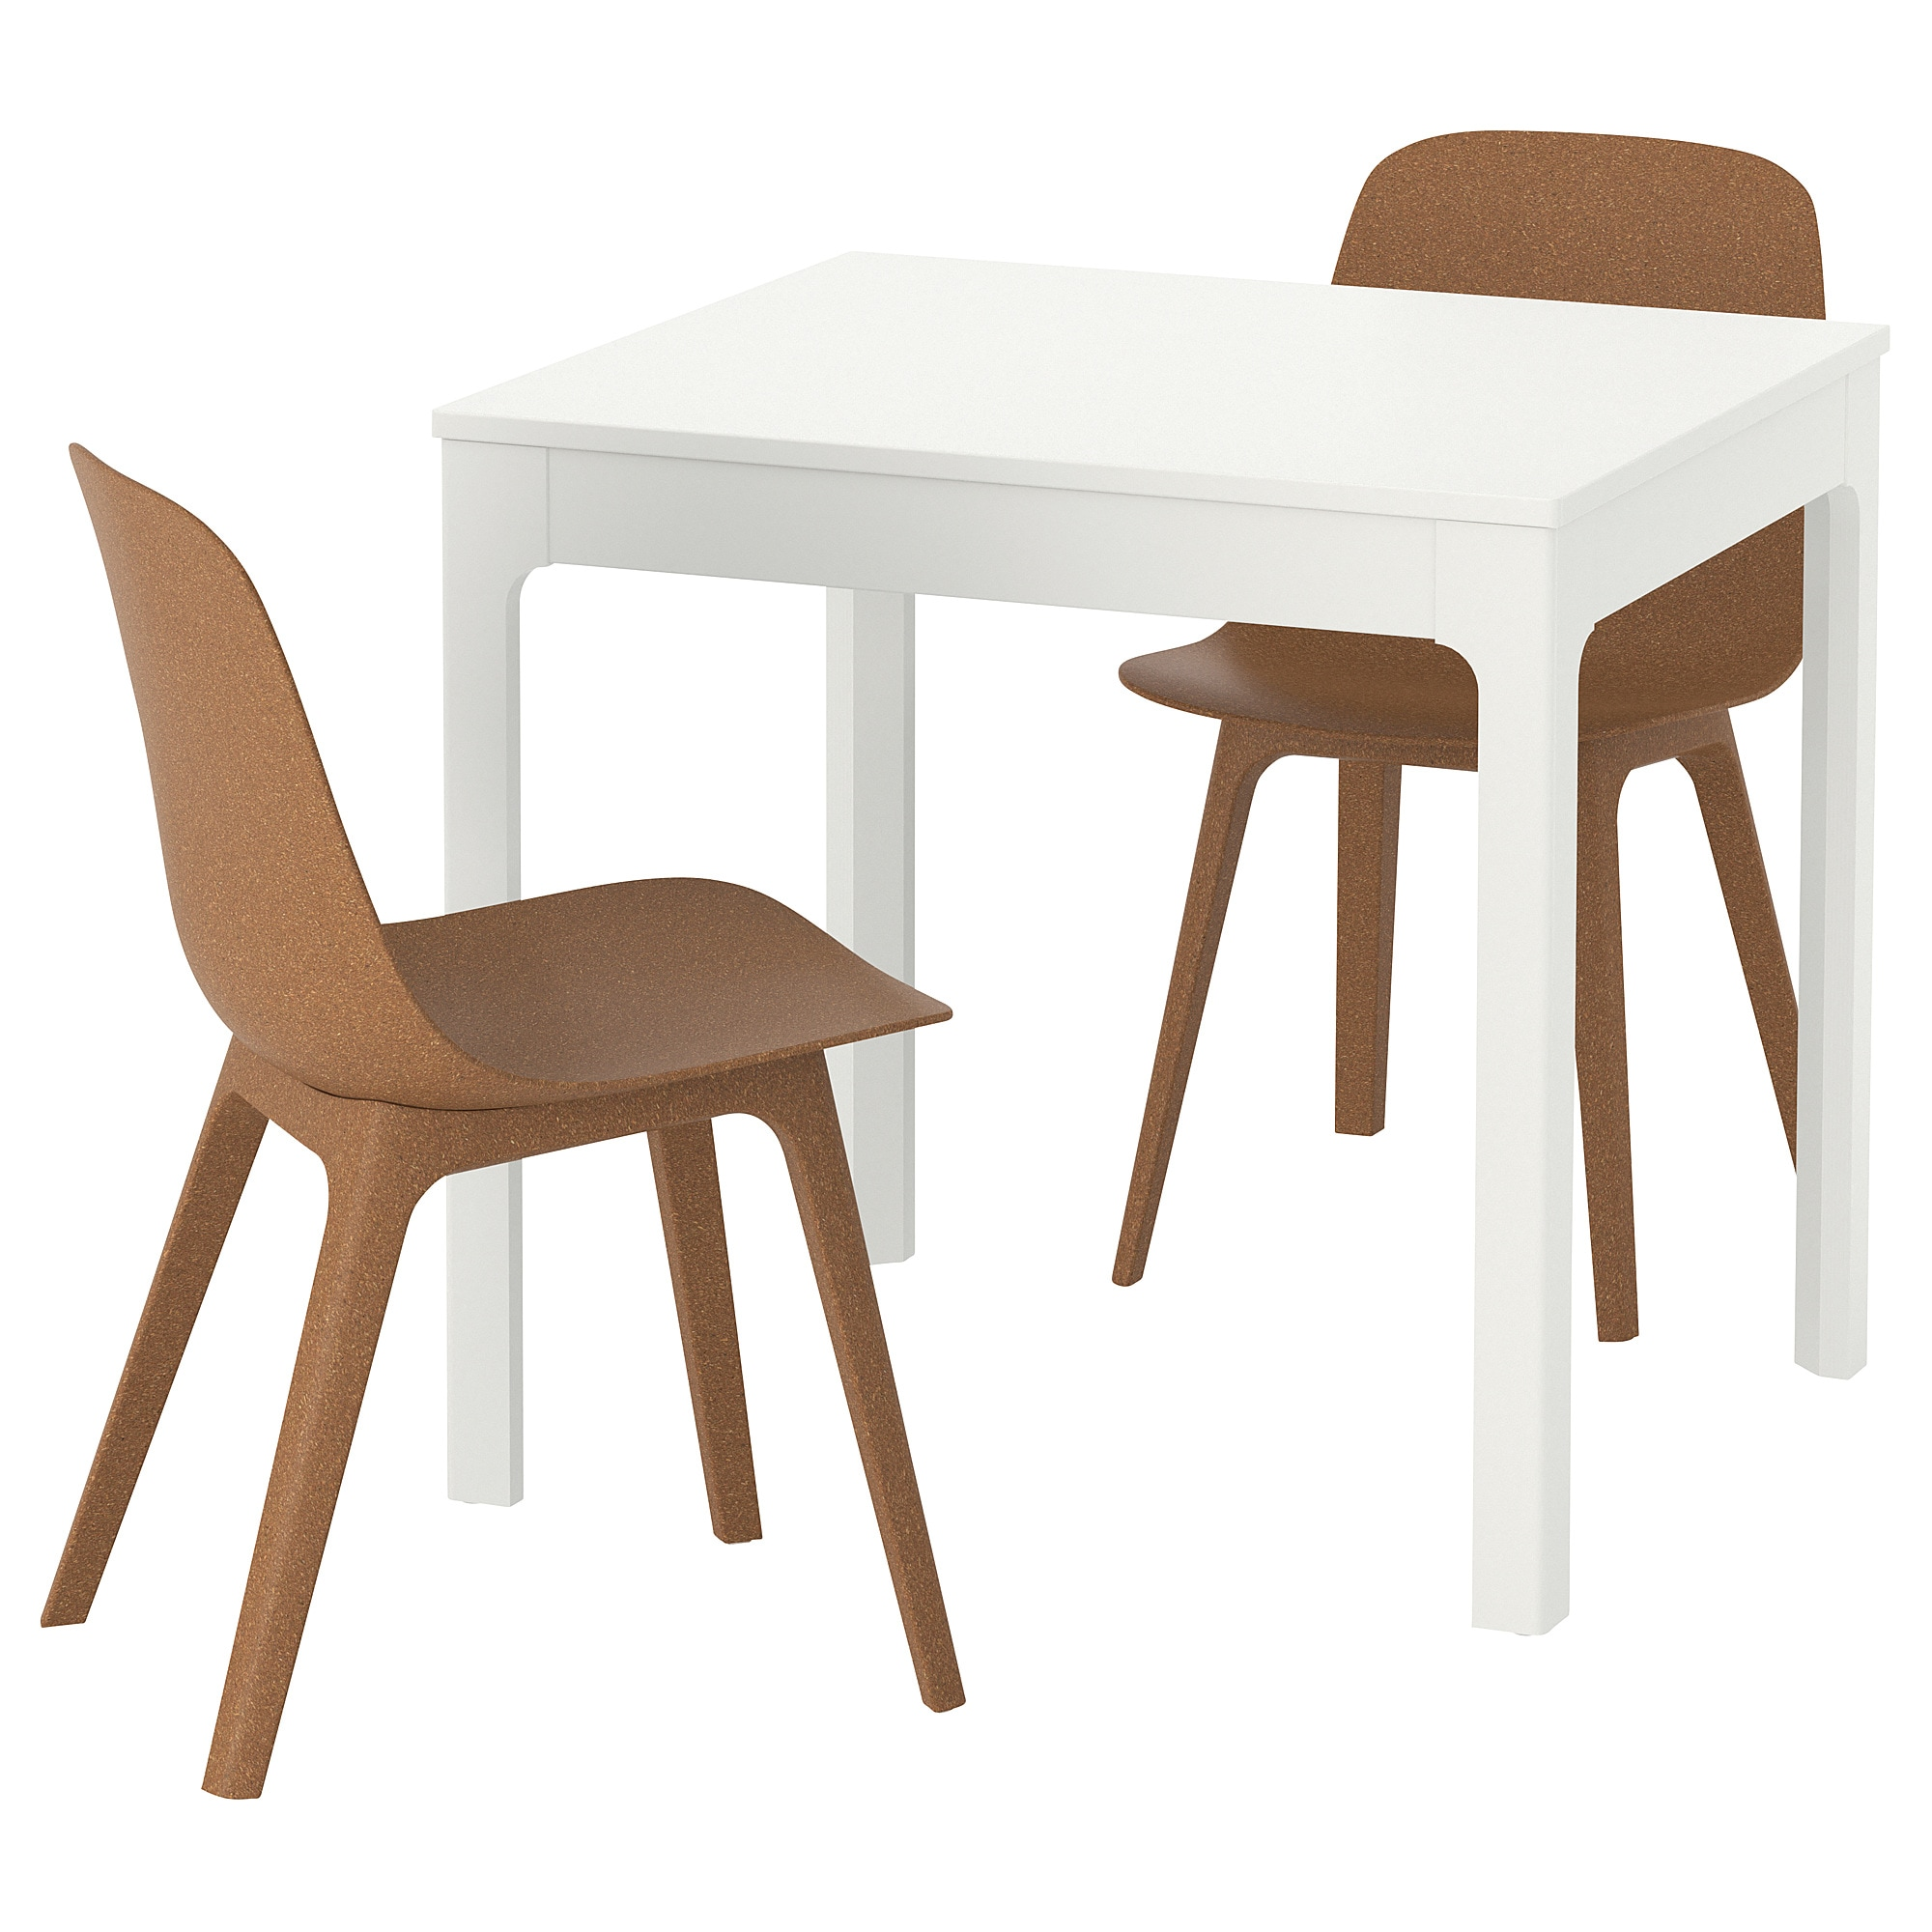 e92b8cd6267 EKEDALEN   ODGER Table and 2 chairs - IKEA